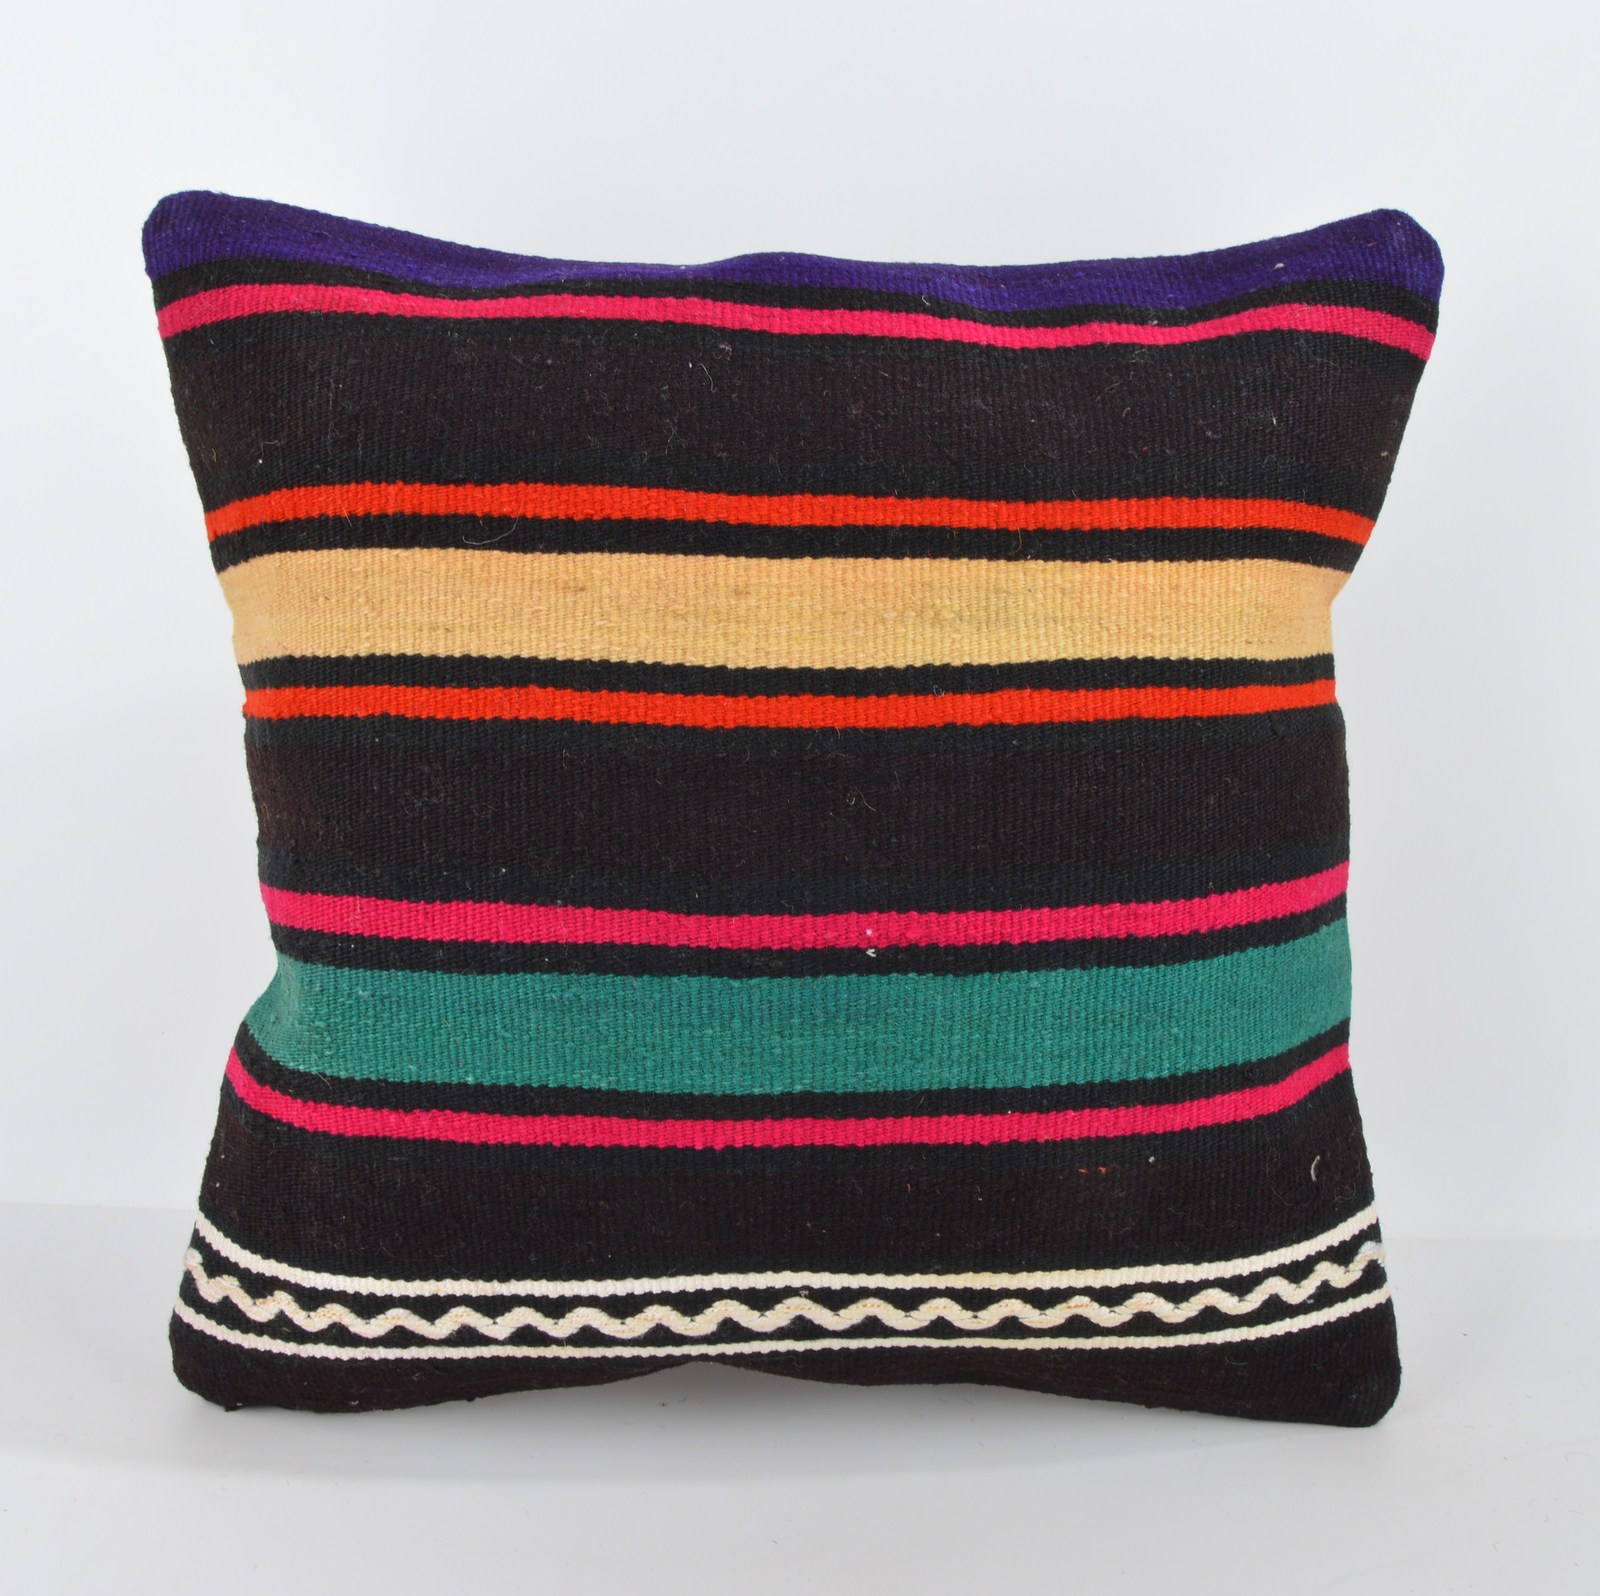 Cushion cover,Modern decor,Colorful pillow,Kilim Bolster,Rustic Decor 16x16 inch - Pillows